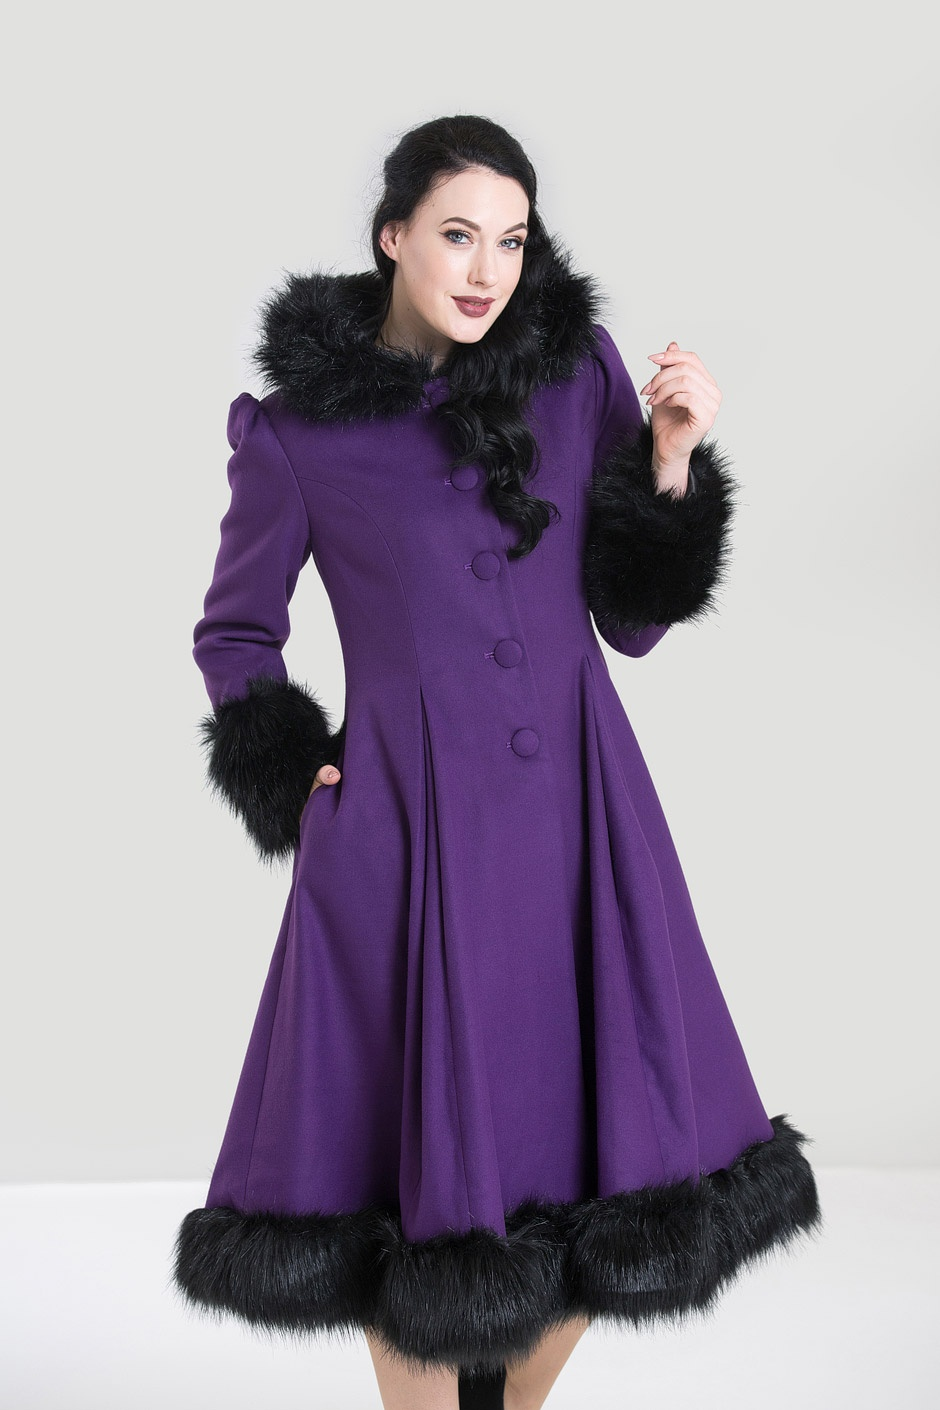 Manteau violet style vintage, Hell Bunny